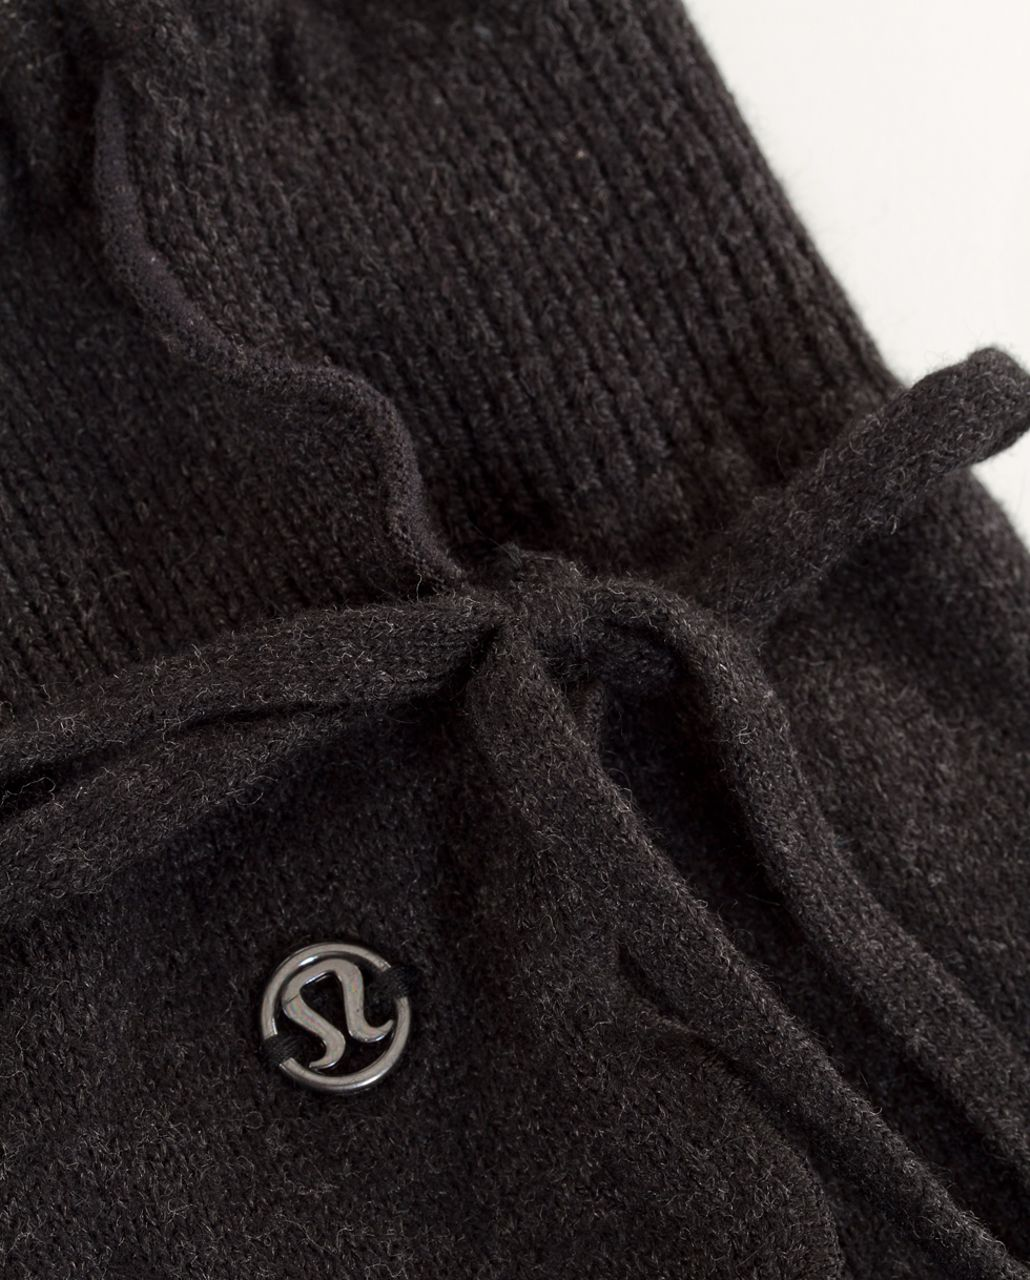 Lululemon Allegro Legwarmer - Heathered Black